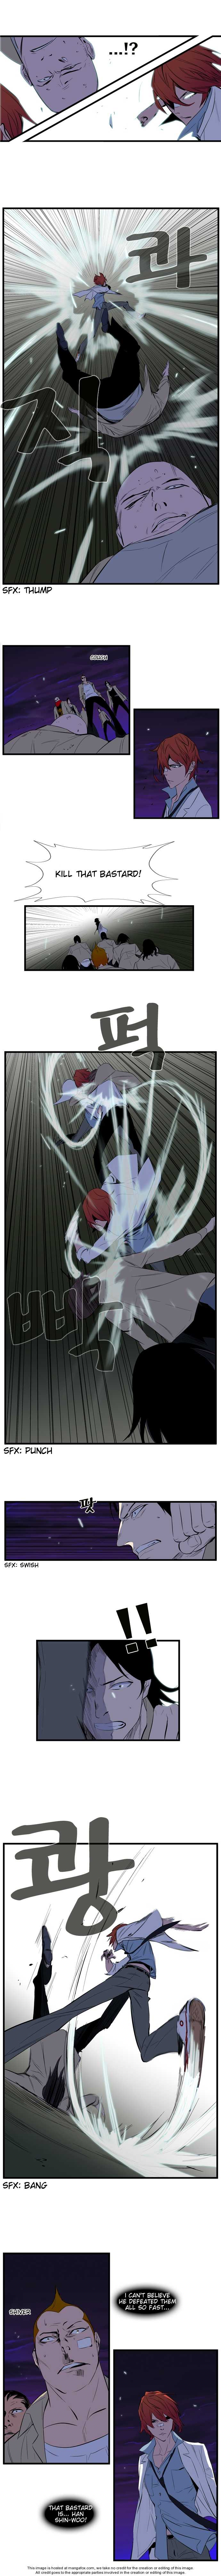 Noblesse 103 Page 3